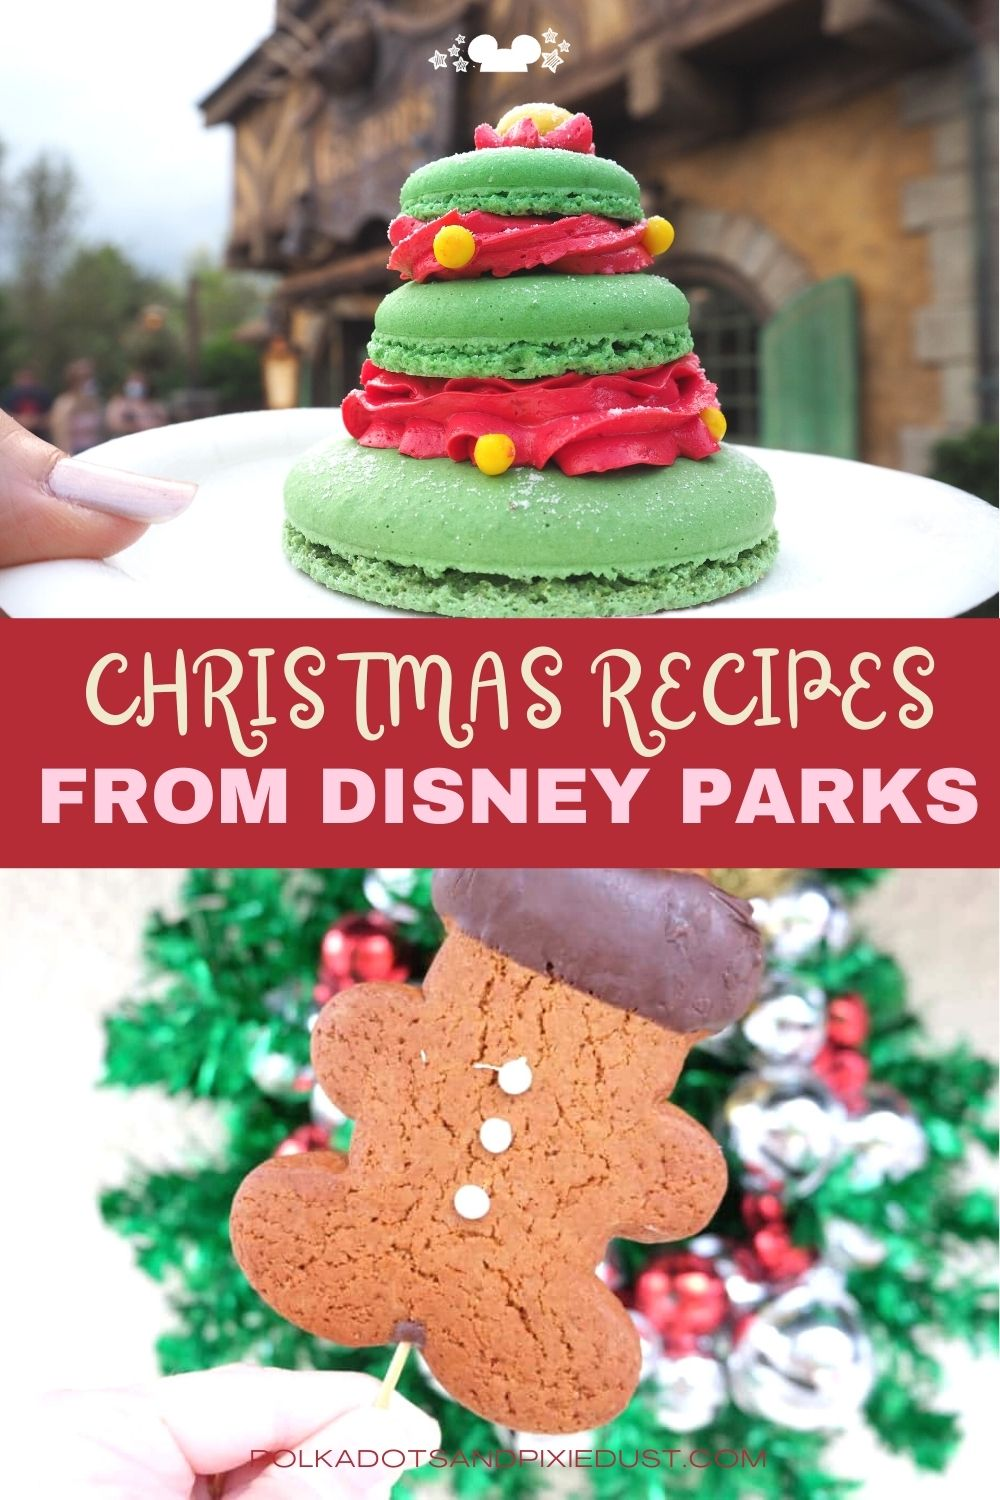 Disney Parks Christmas Recipes of the best snacks you can find in the parks  like cookies, Belle's Enchanted Christmas and Cocktails too! #polkadoptixies #disneyrecipes #christmascocktails